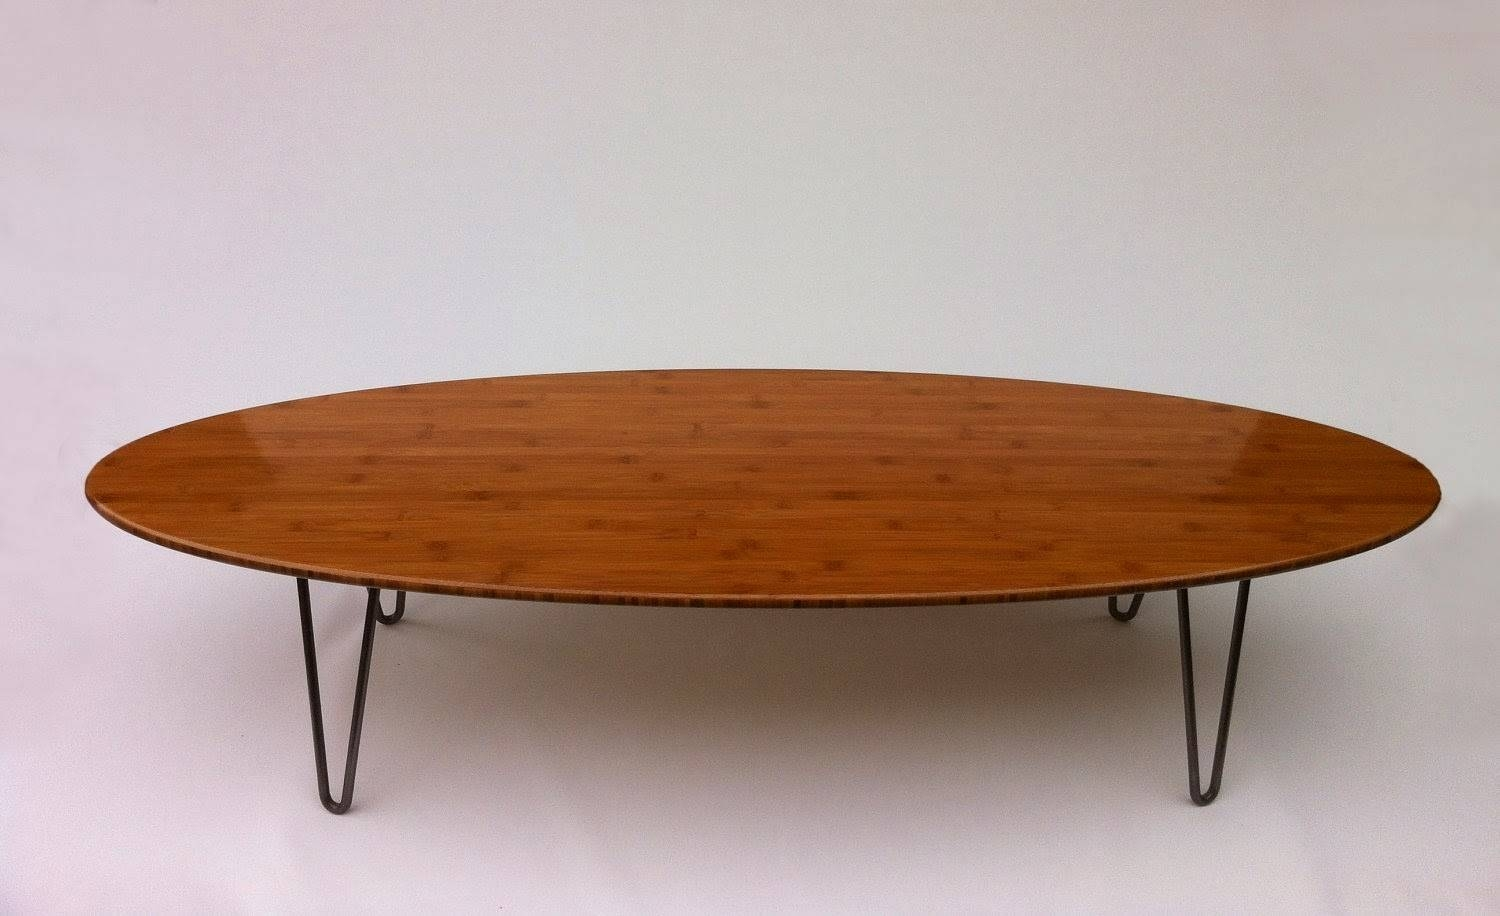 25 Elegant Oval Coffee Table Designs Made Of Glass And Wood throughout Metal Oval Coffee Tables (Image 1 of 15)